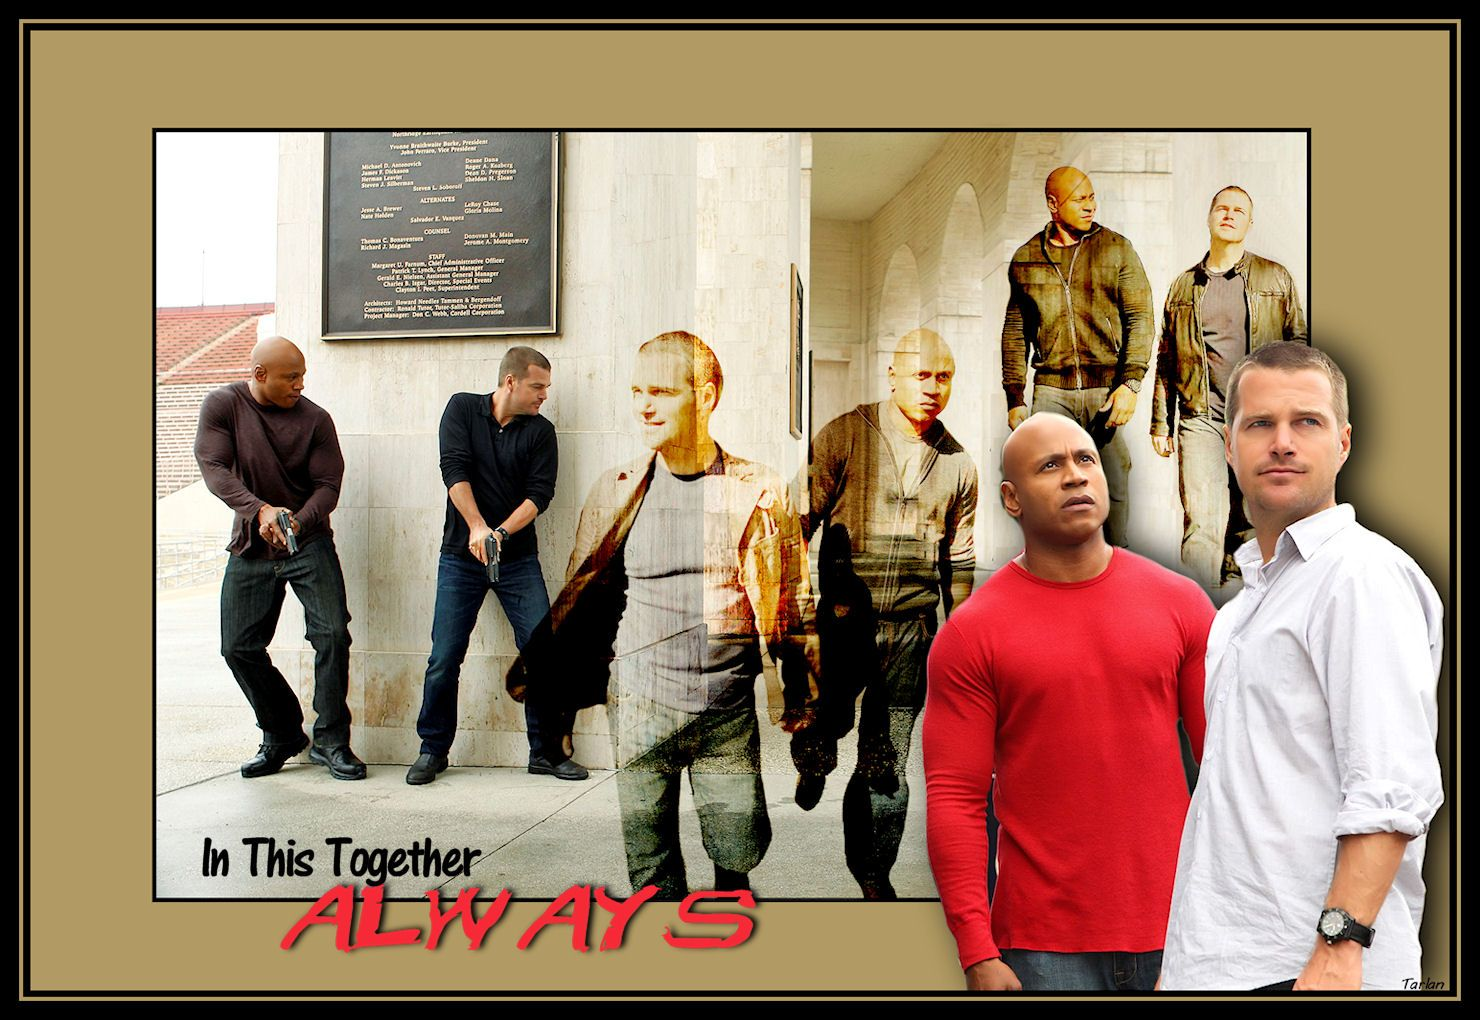 8 Ncis Los Angeles Wallpapers Backgrounds Wallpaper Abyss Ncis Los Angeles Ncis Los Angeles Wallpaper